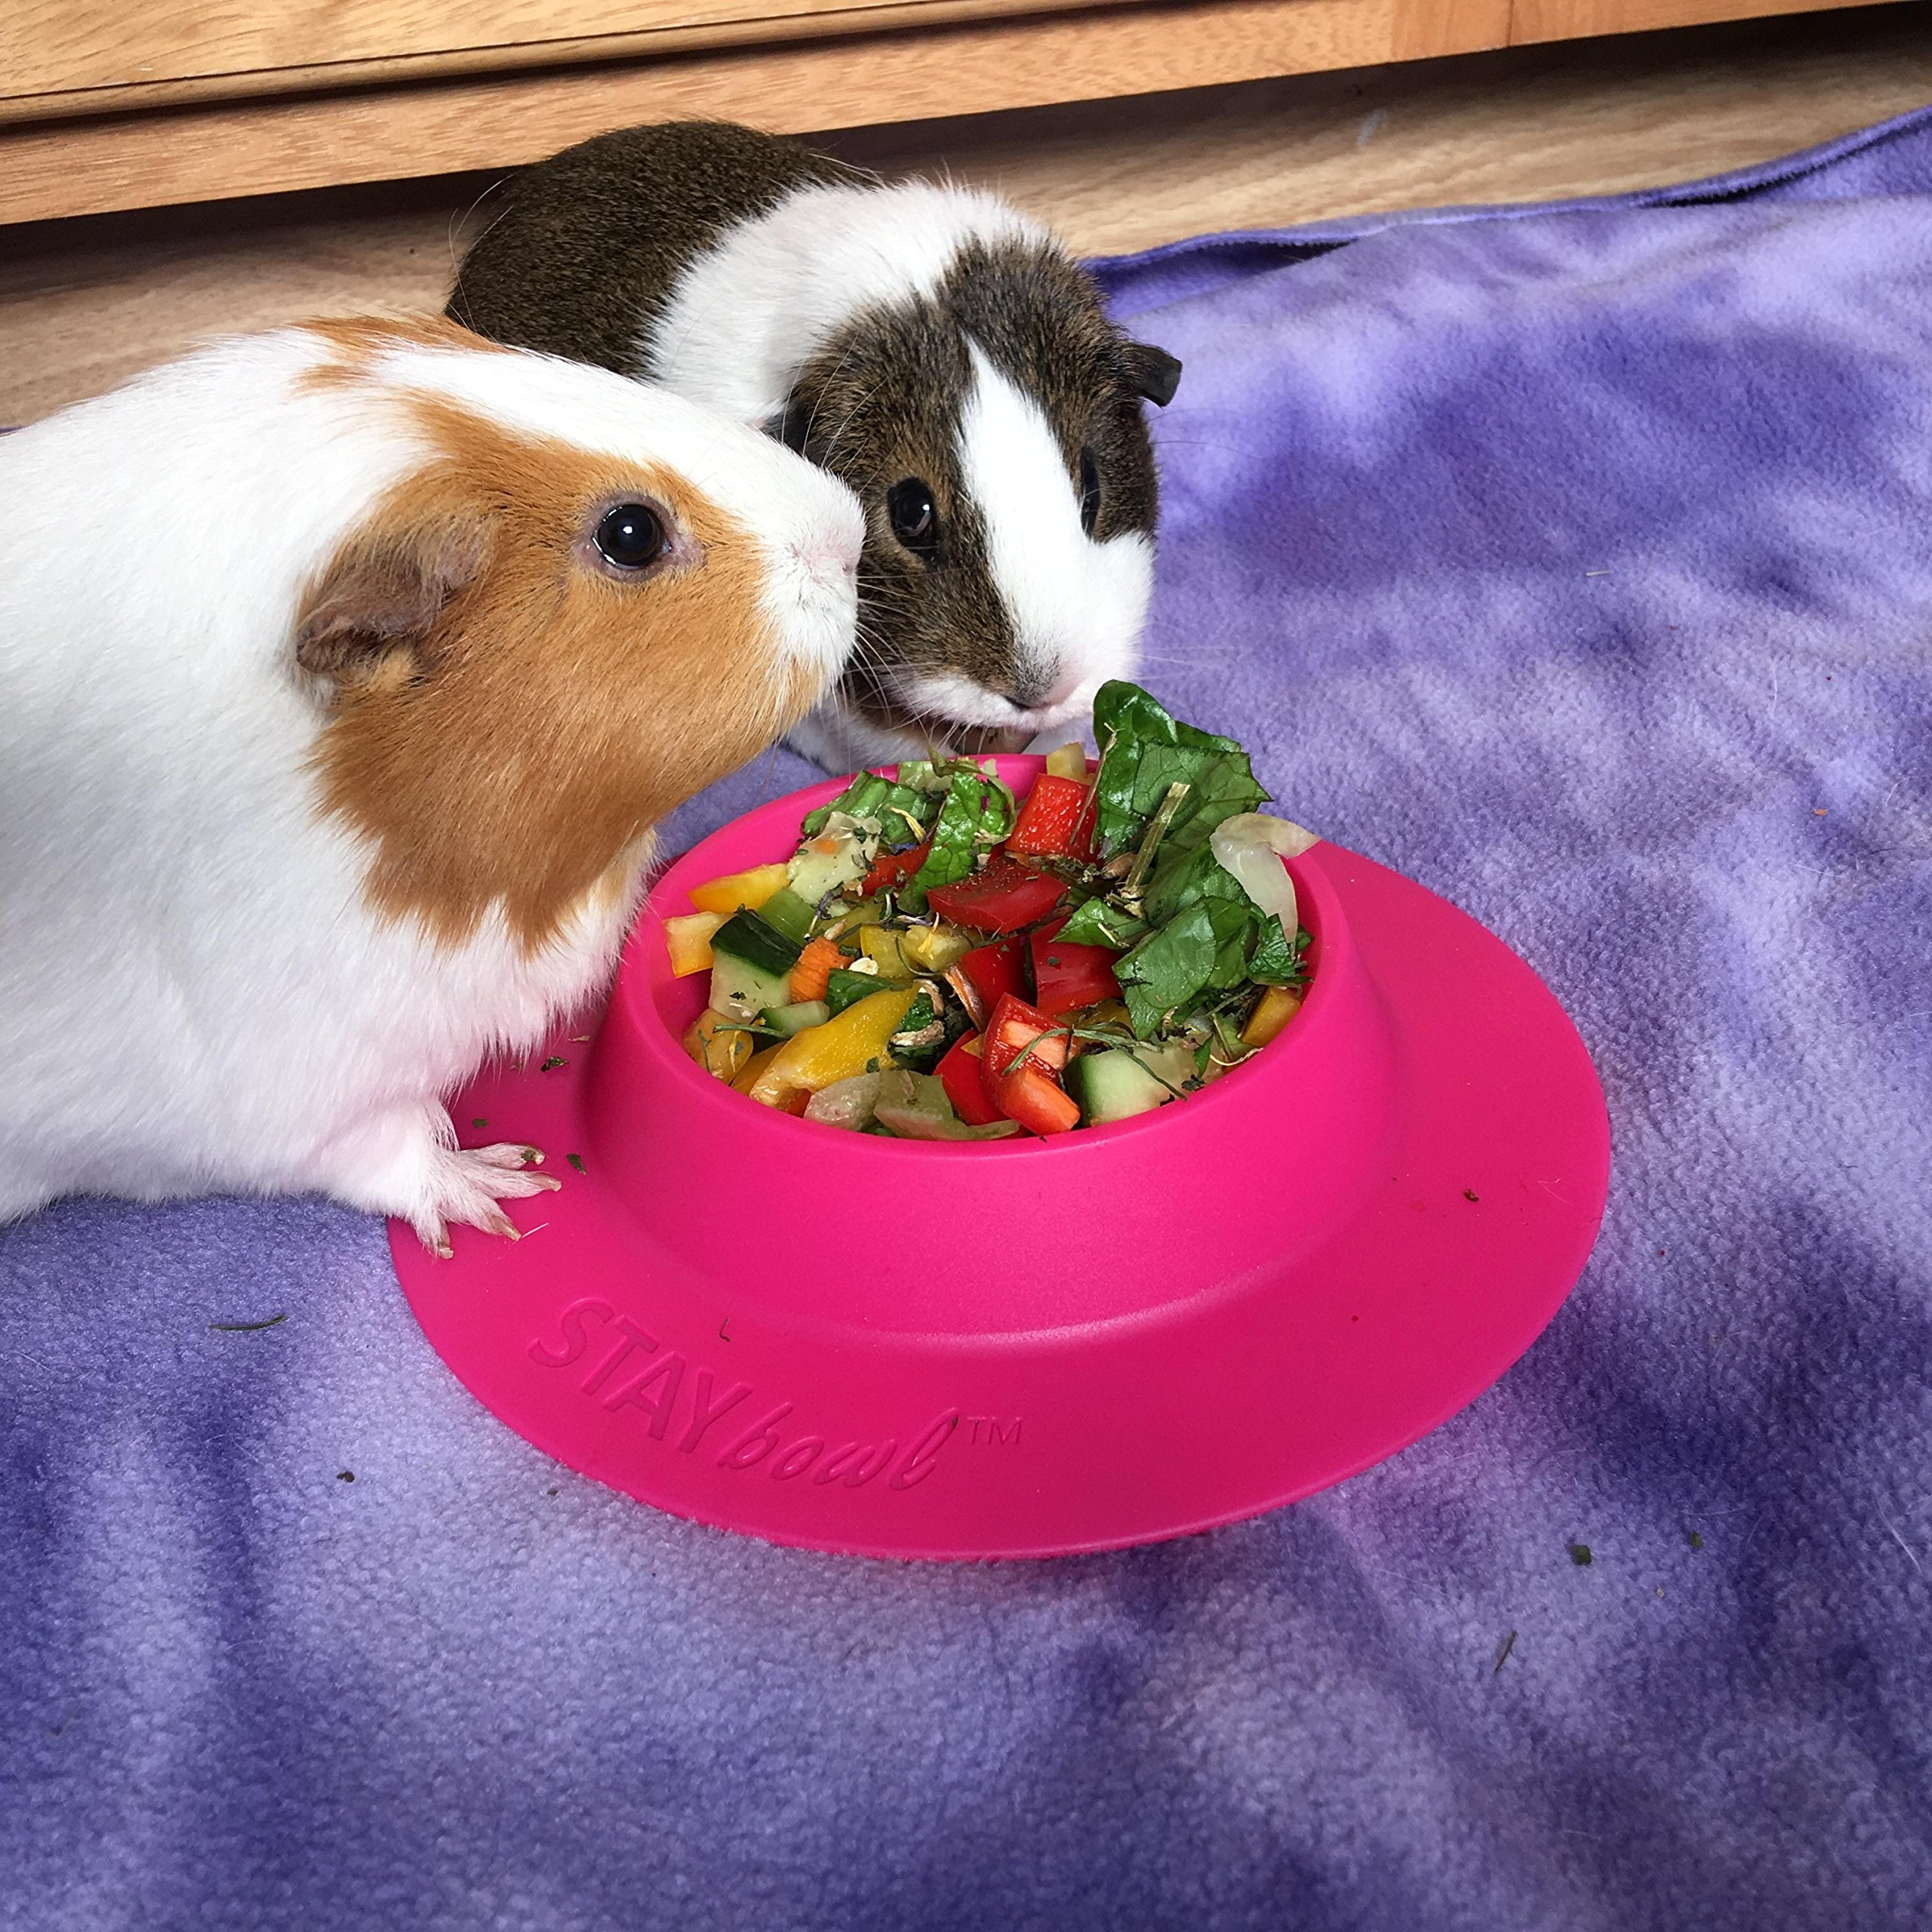 STAYbowl Tip-Proof Bowl for Guinea Pigs and Other Small Pets - Fuchsia (Pink) - Large 3/4 Cup Size New